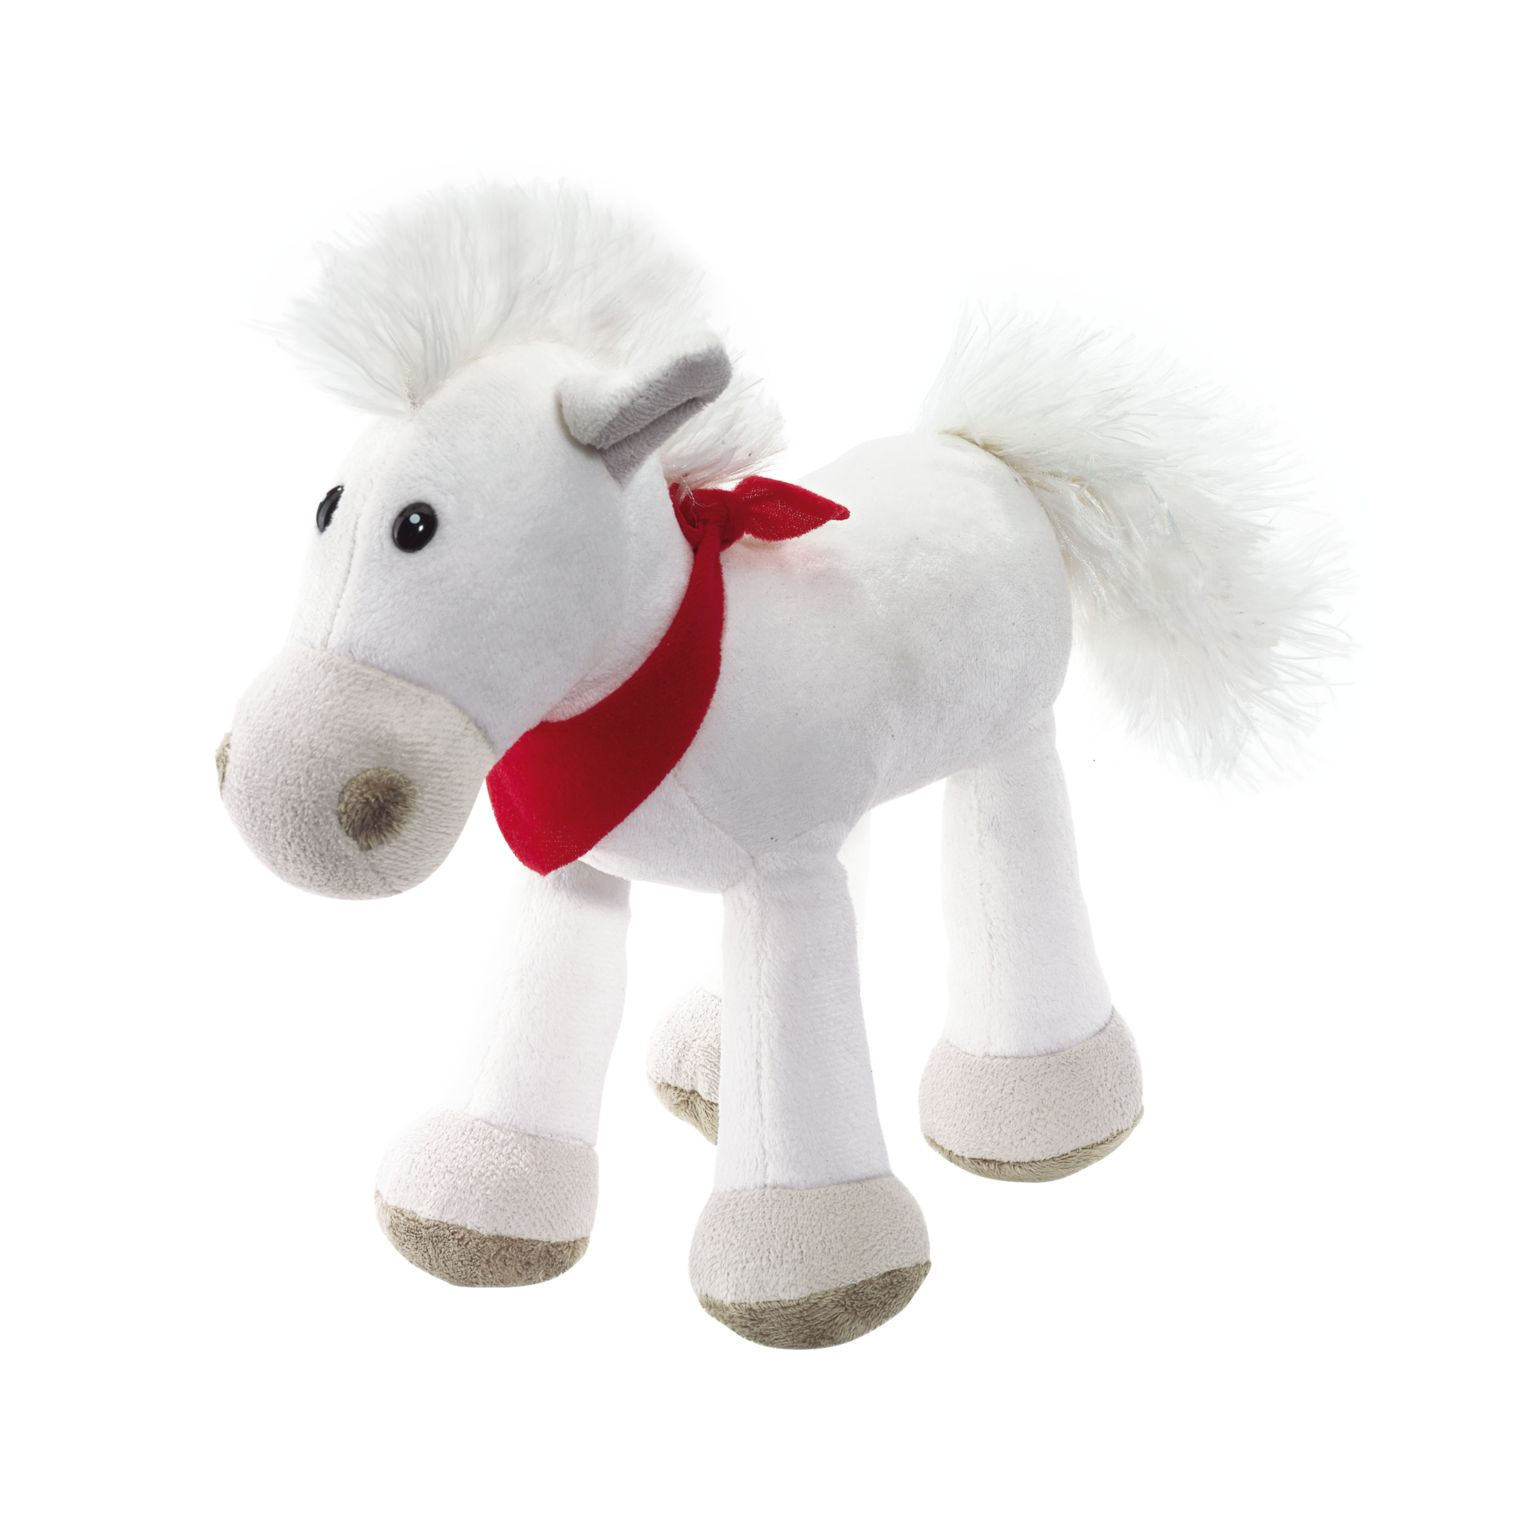 Plush horse JONNY with red scarf (packed separately)